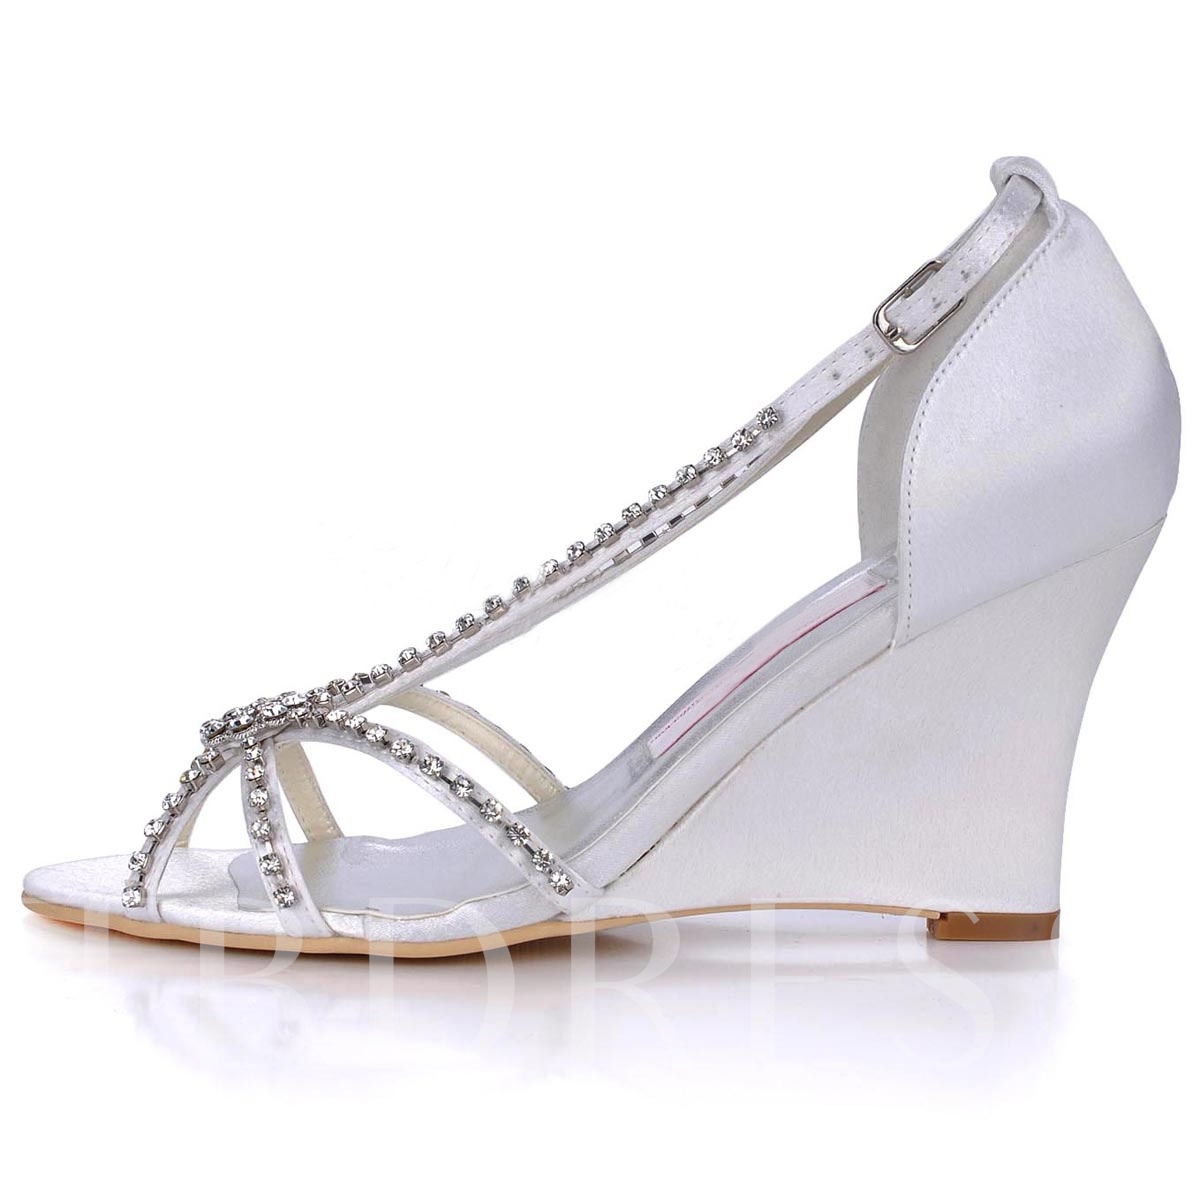 Rhinestone Satin Peep Toe Wedge Heel Wedding Shoes